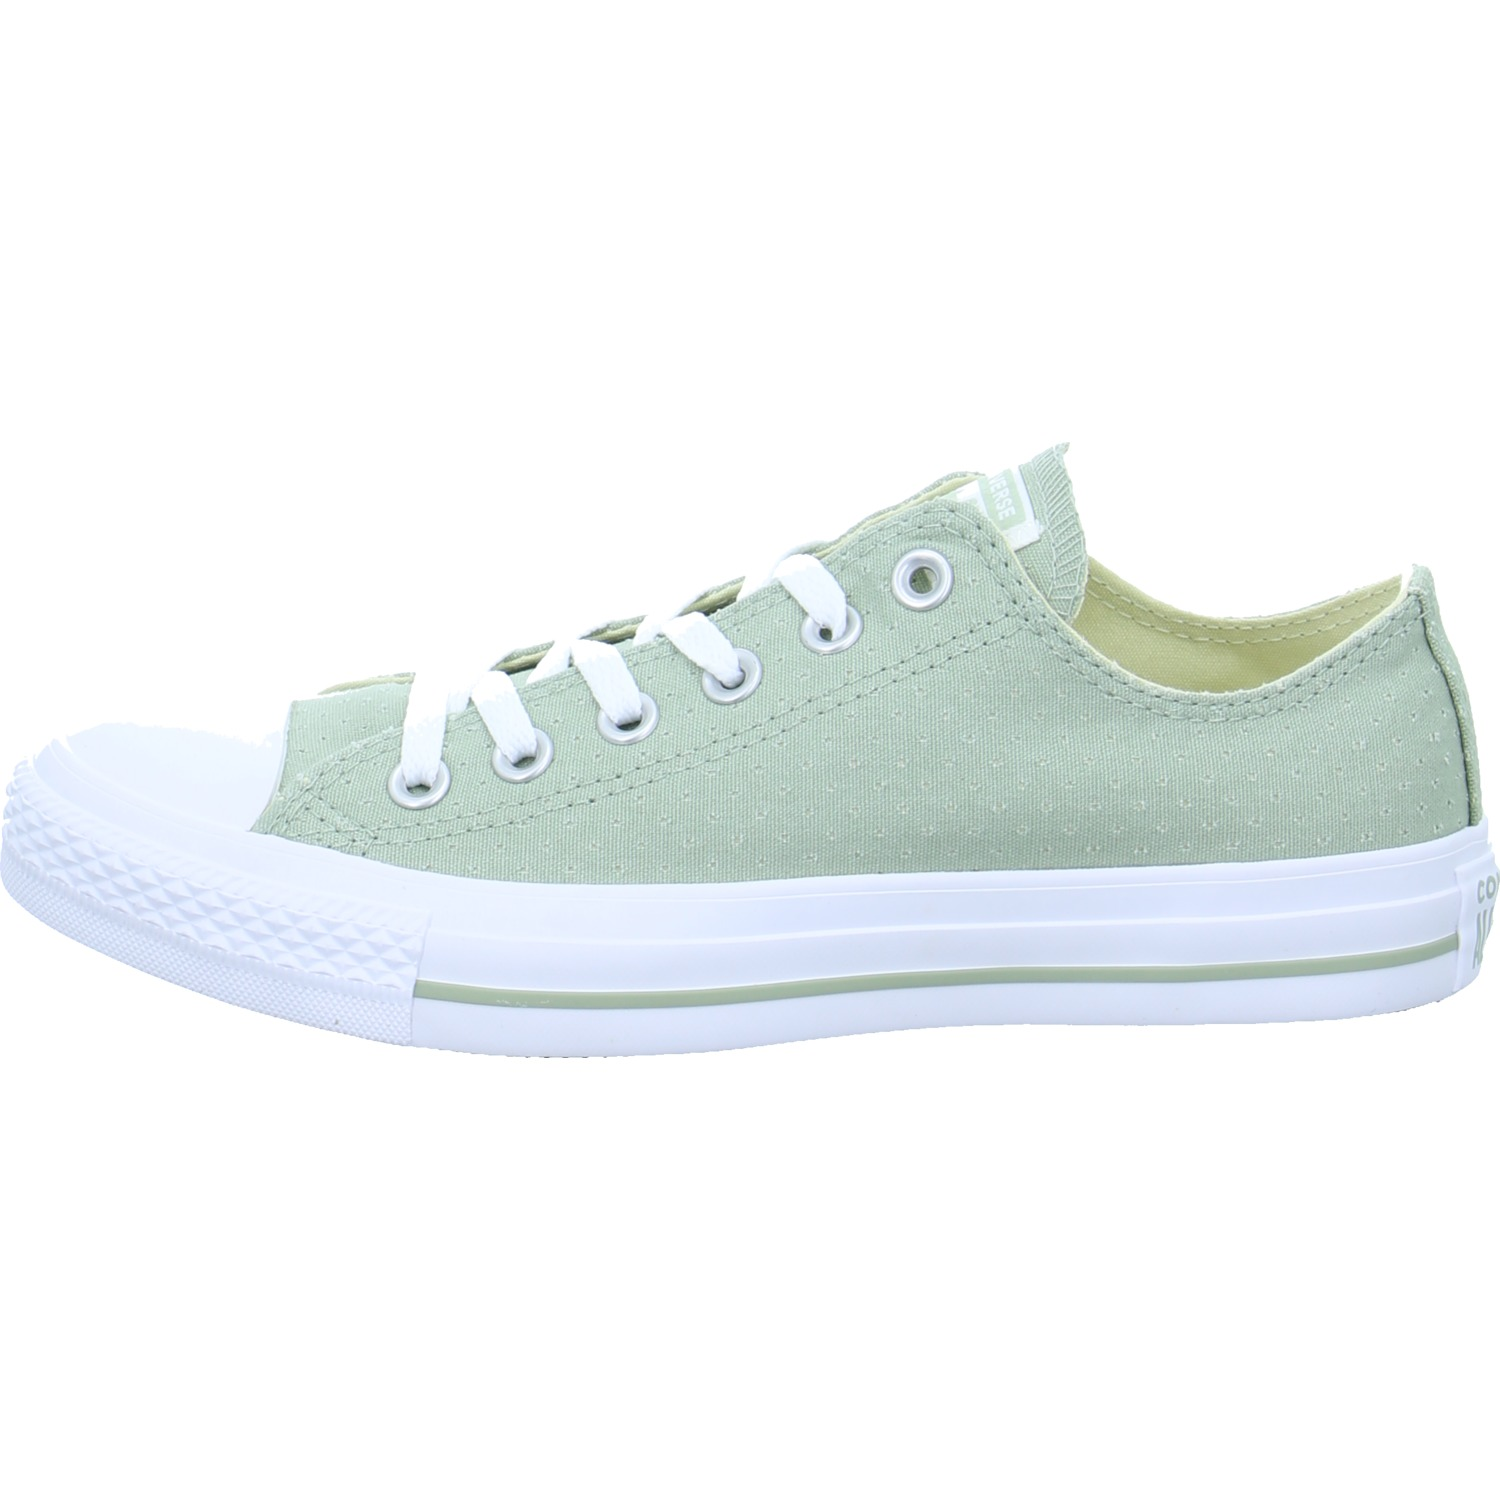 Converse CT OX AS OX CT Damen Sneaker Grün Schnürer Freizeit Chuck Taylor All Stars a6ed0a